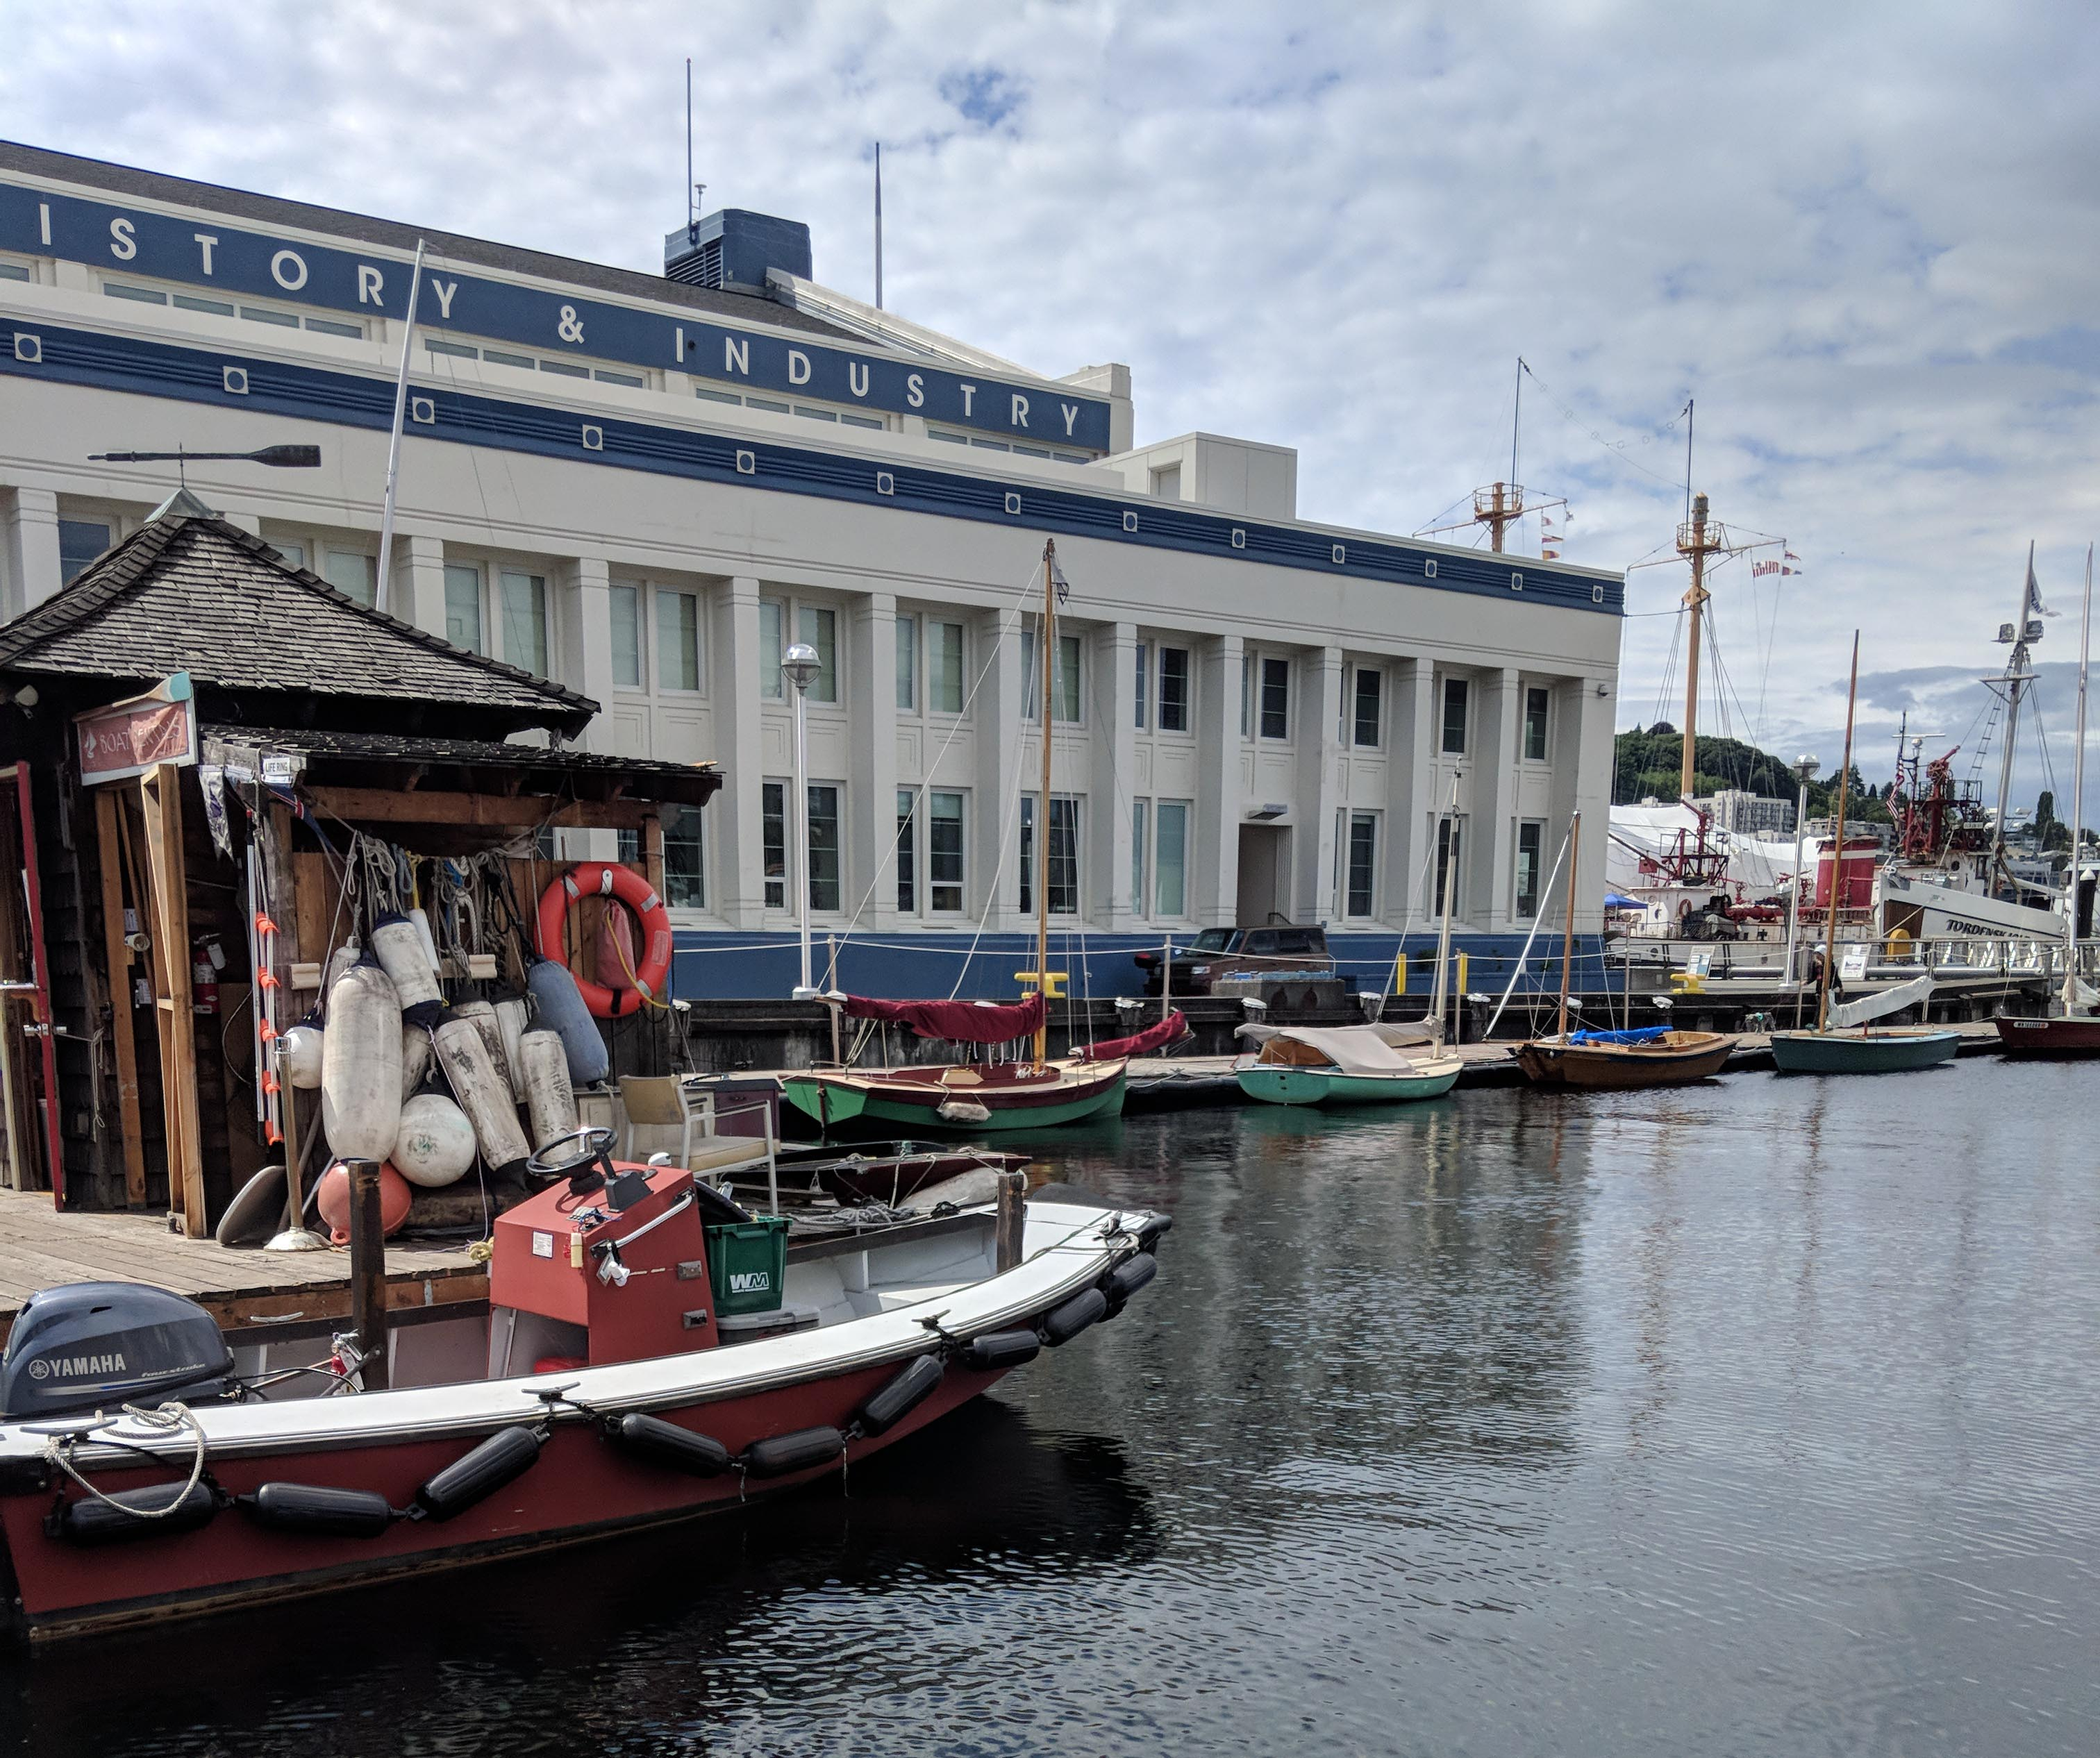 South lake union's center for wooden boats